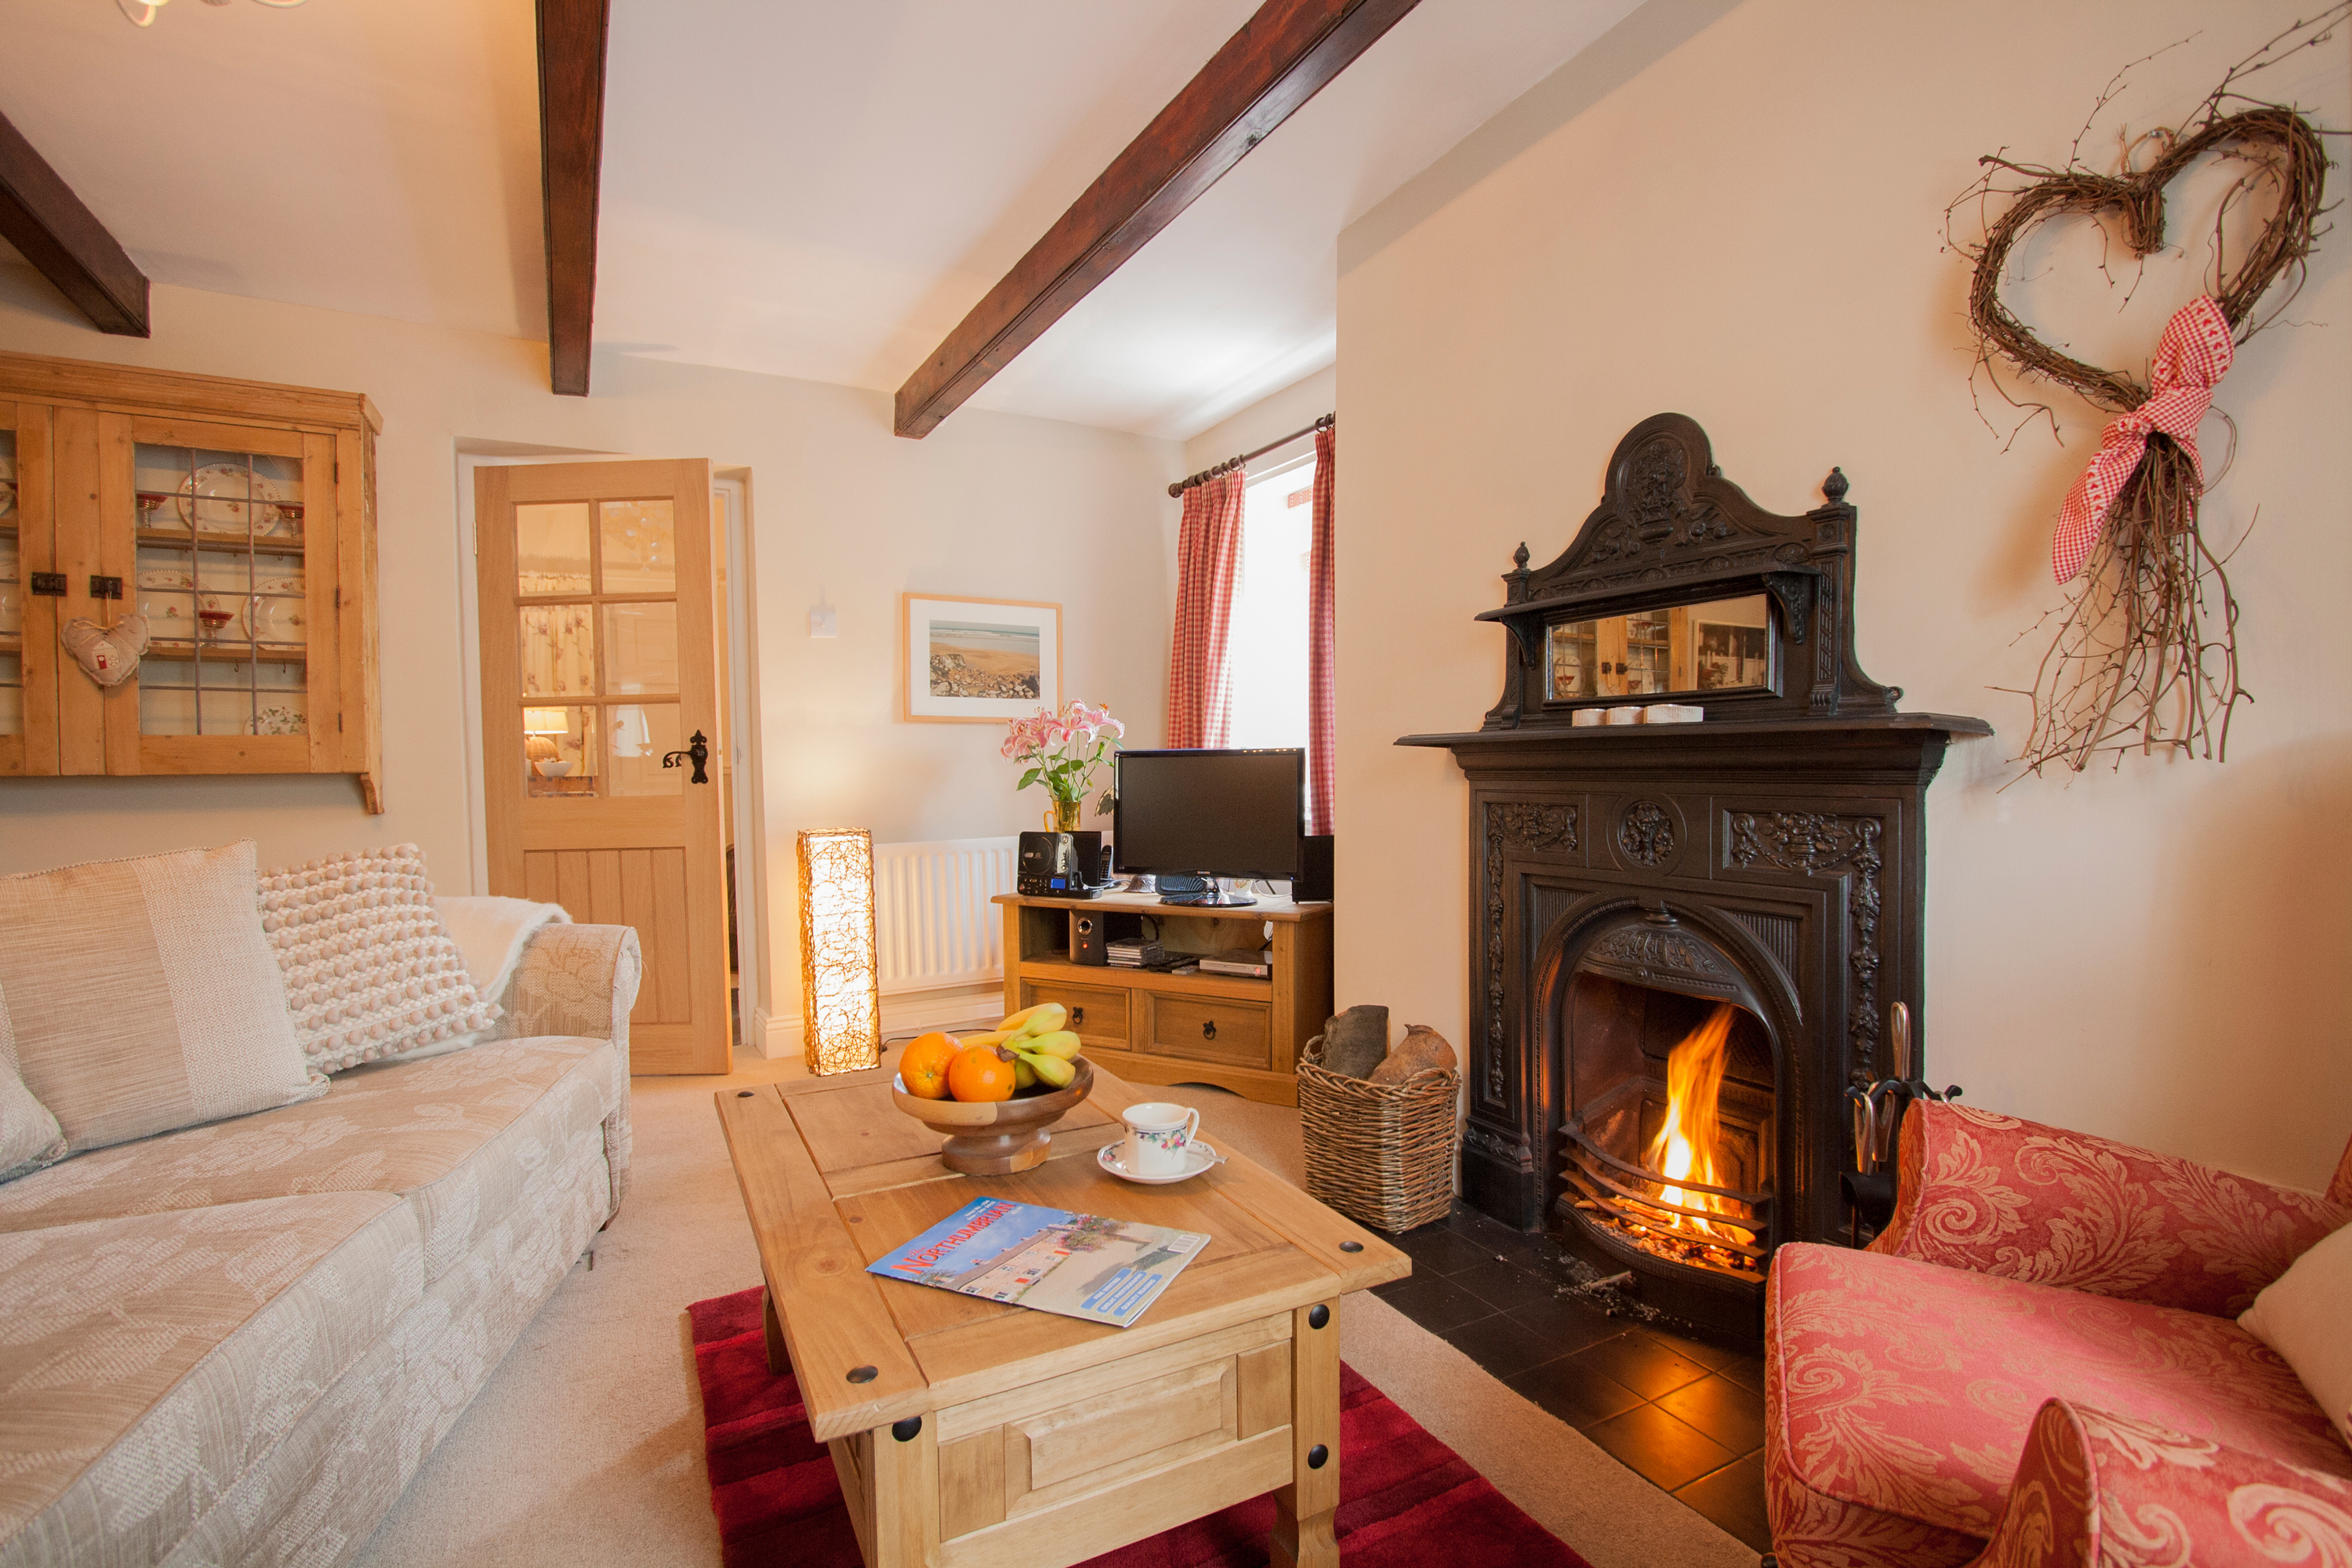 romantic holiday cottages in Warkworth for couples with a dog, holiday cottages in Warkworth with an open fire